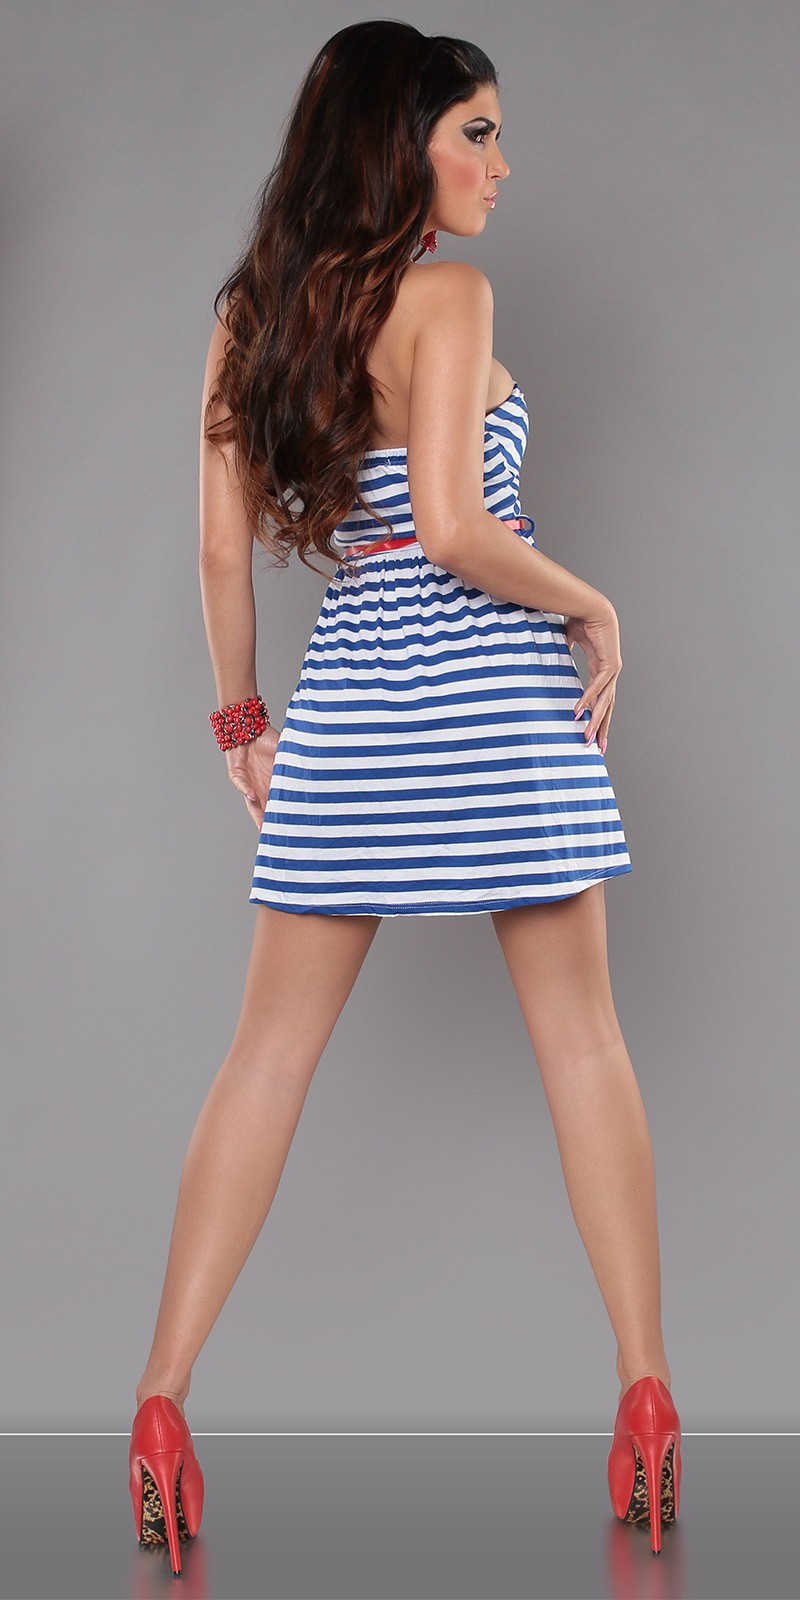 Blue Strapless Striped Dress With Red Belt